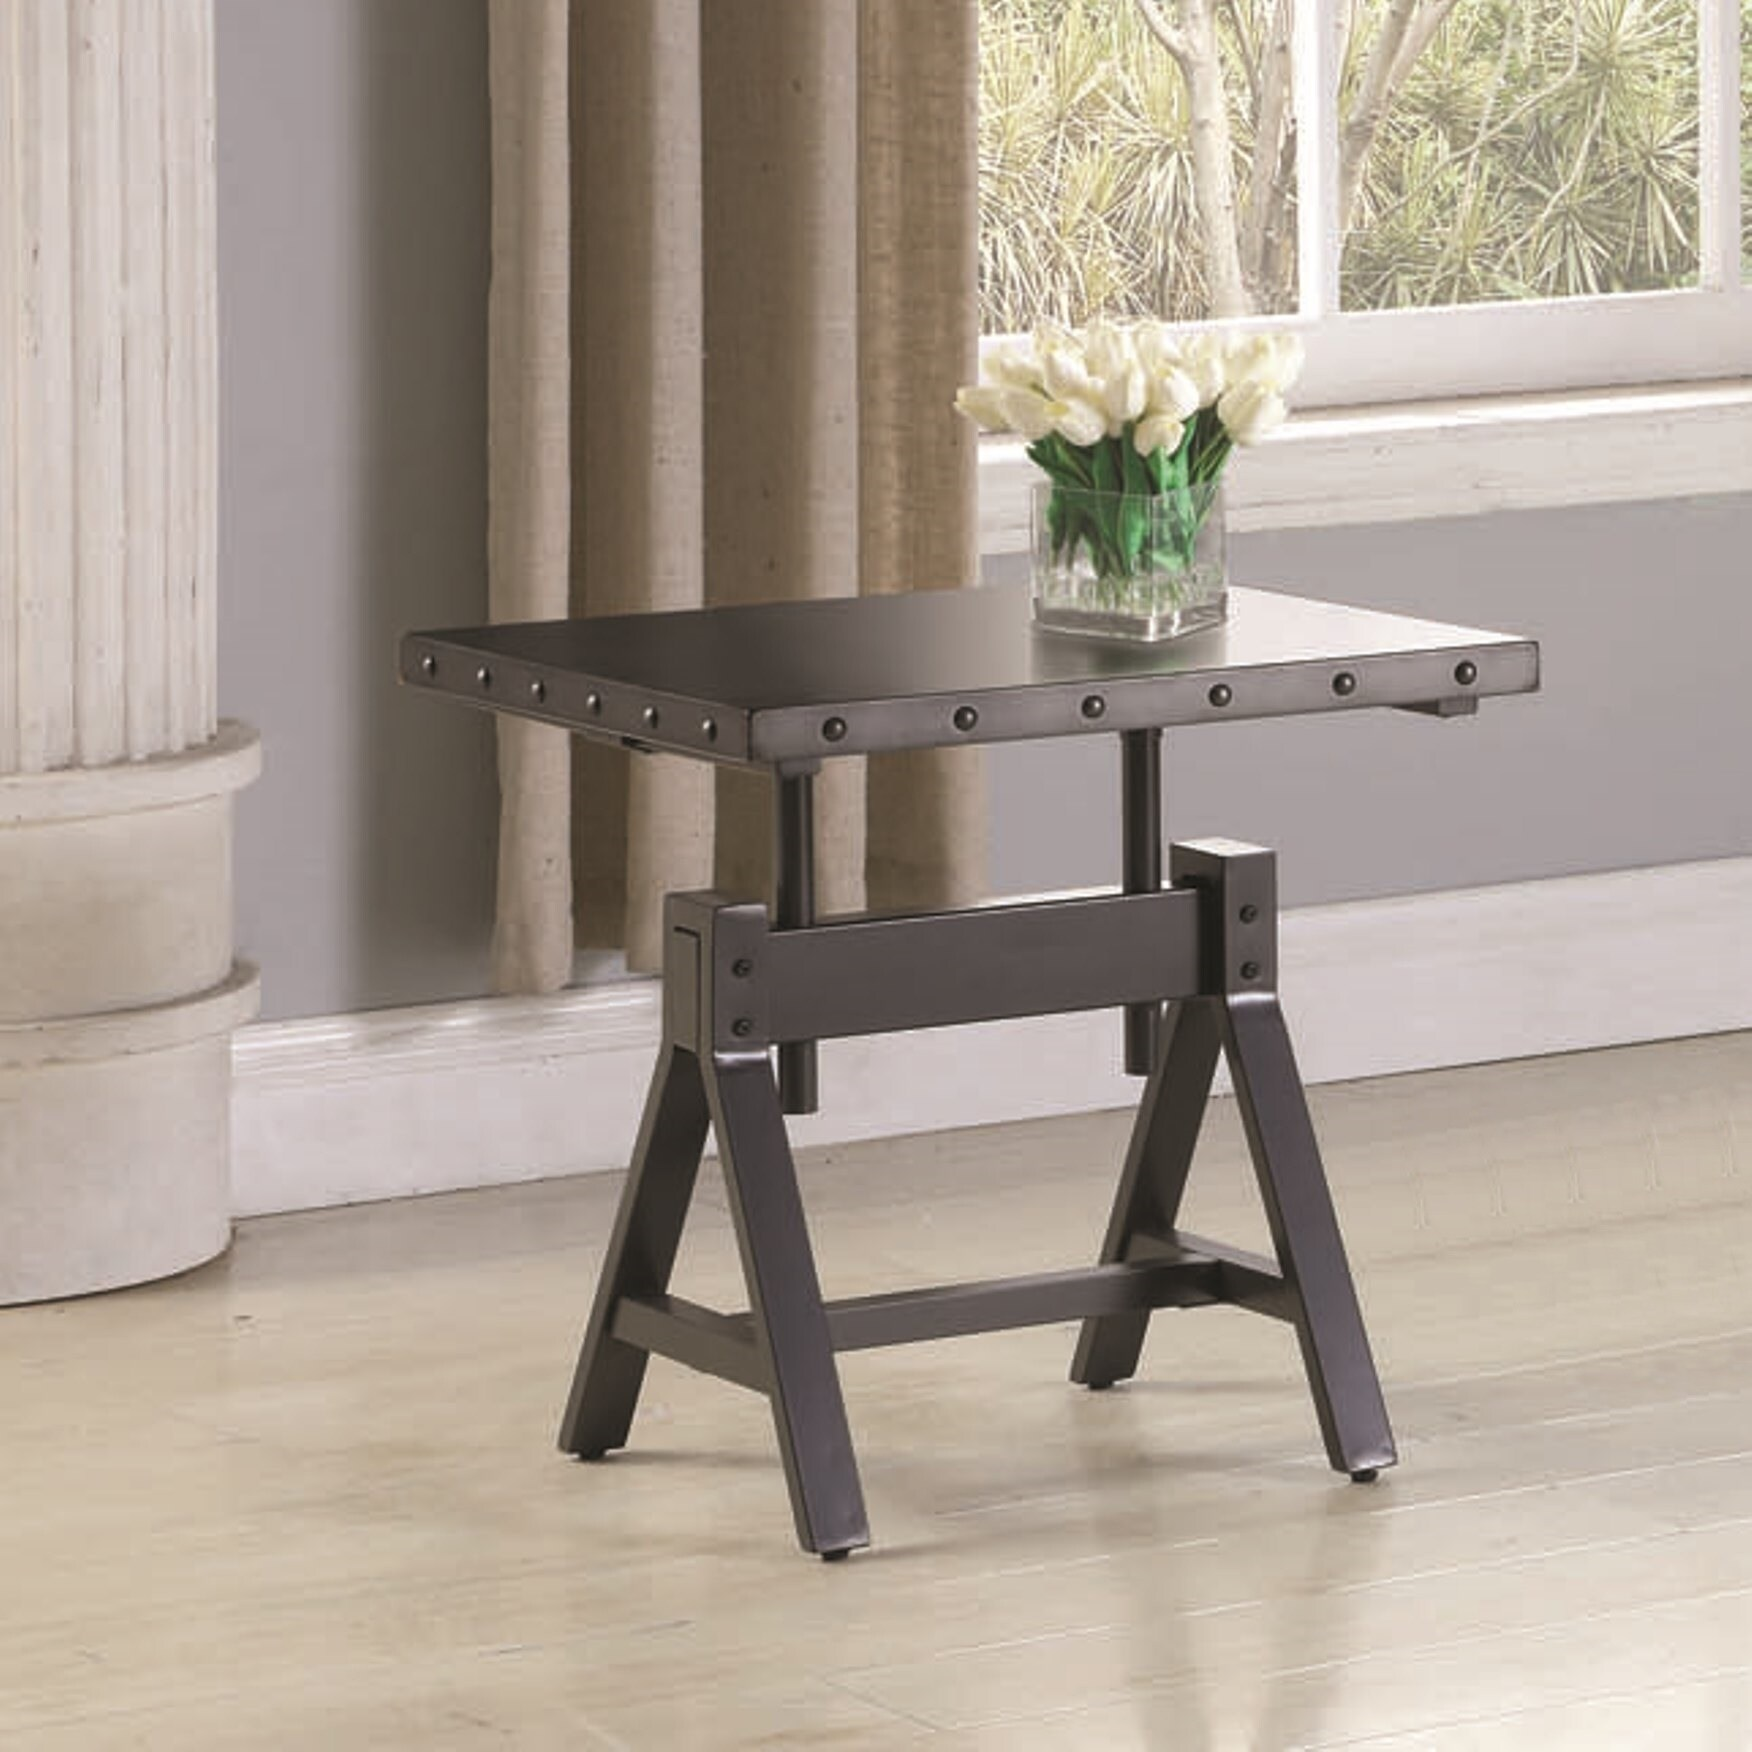 - Shop Industrial Rustic Design Living Room Accent Table - Free